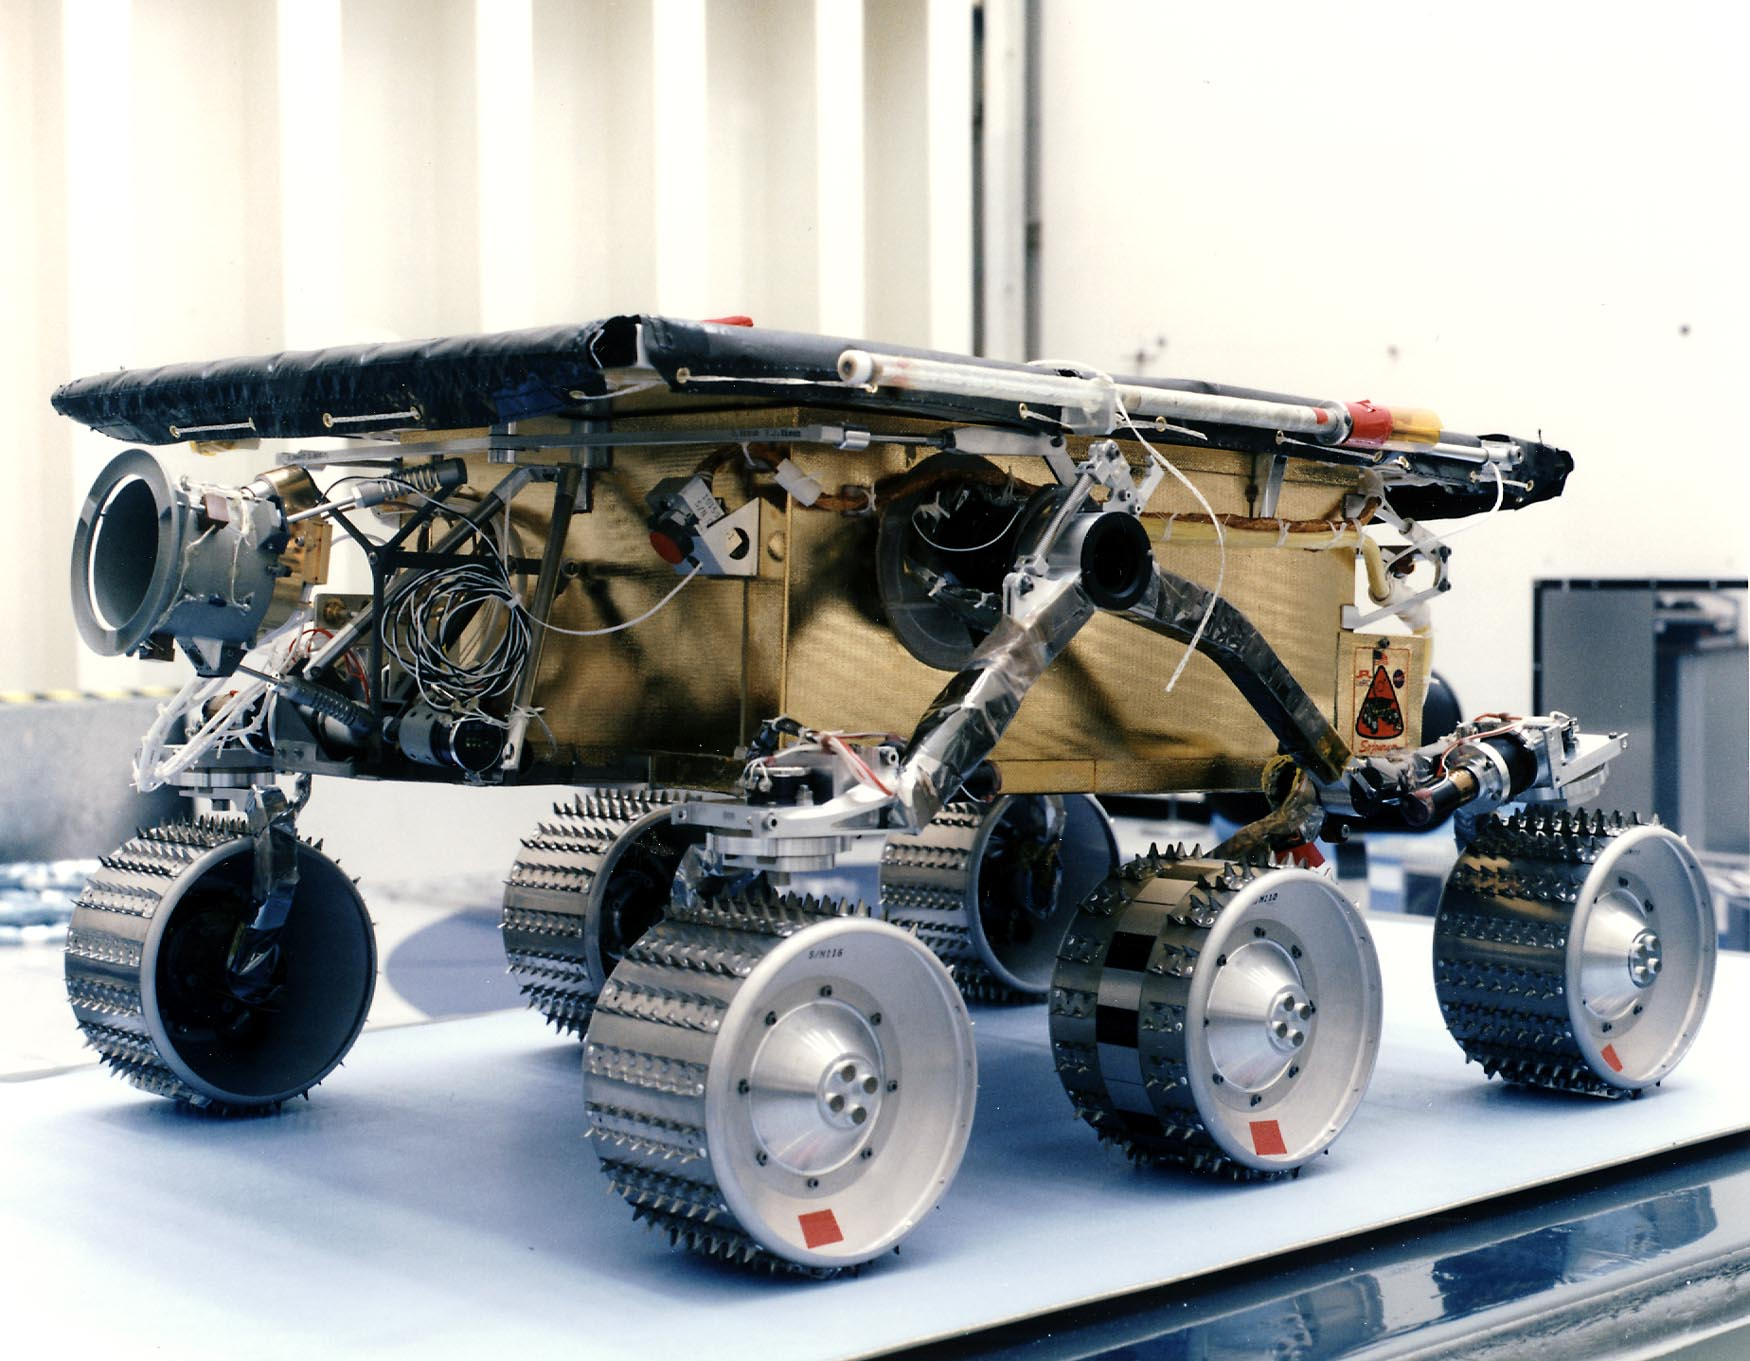 Sojourner, the little rover that could, built by iRobot for NASA's Pathfinder mission to Mars.